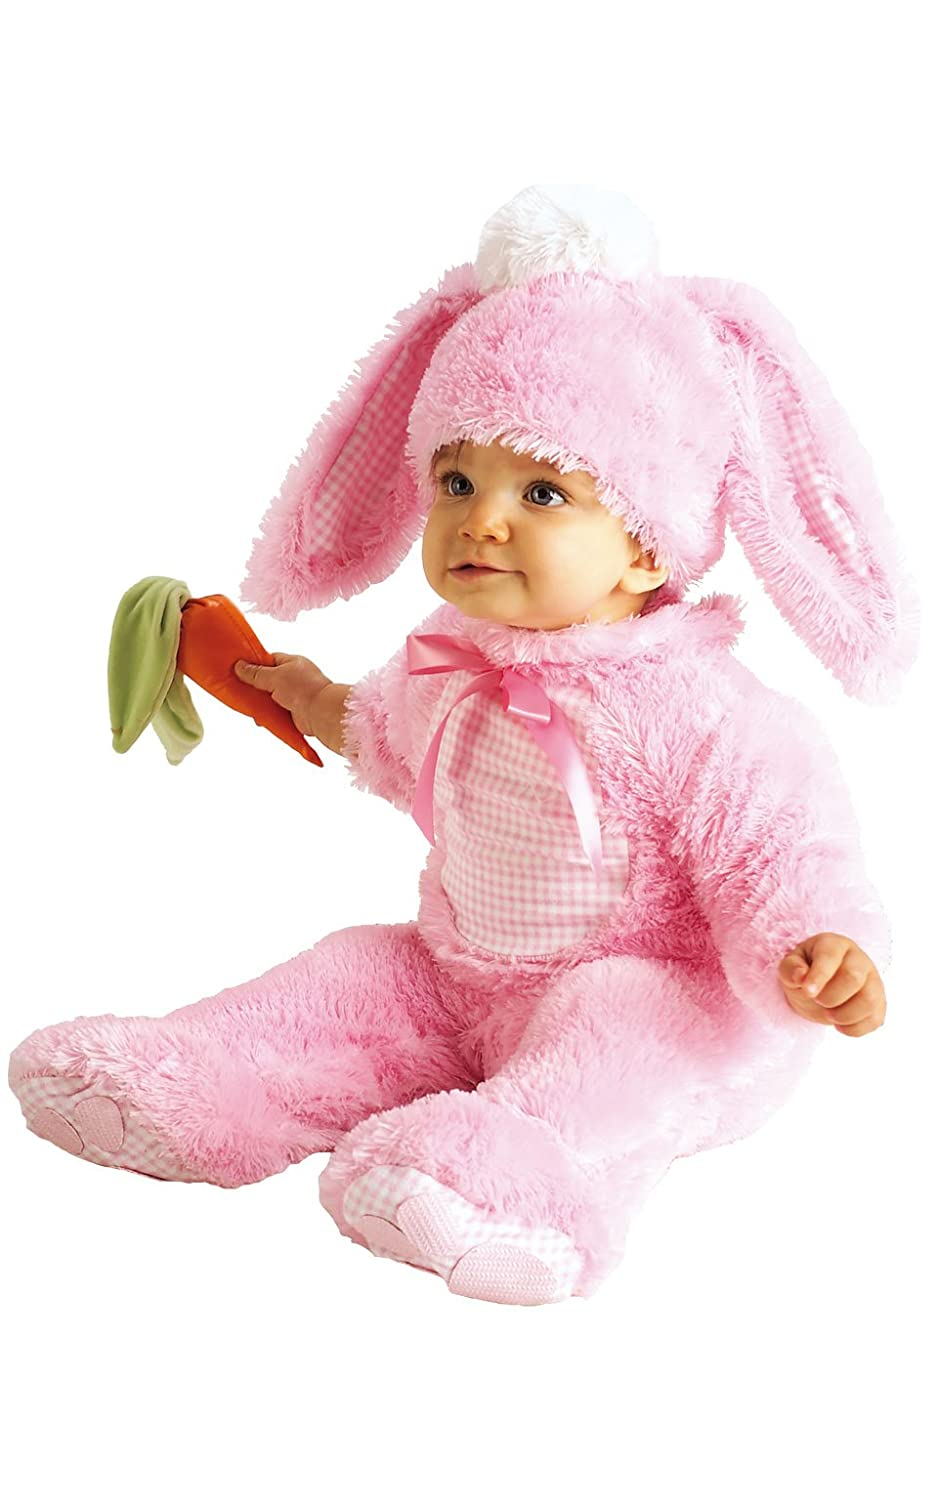 Rubie's Baby Handsome Lil Wabbit Costume Rubies Costumes - Apparel